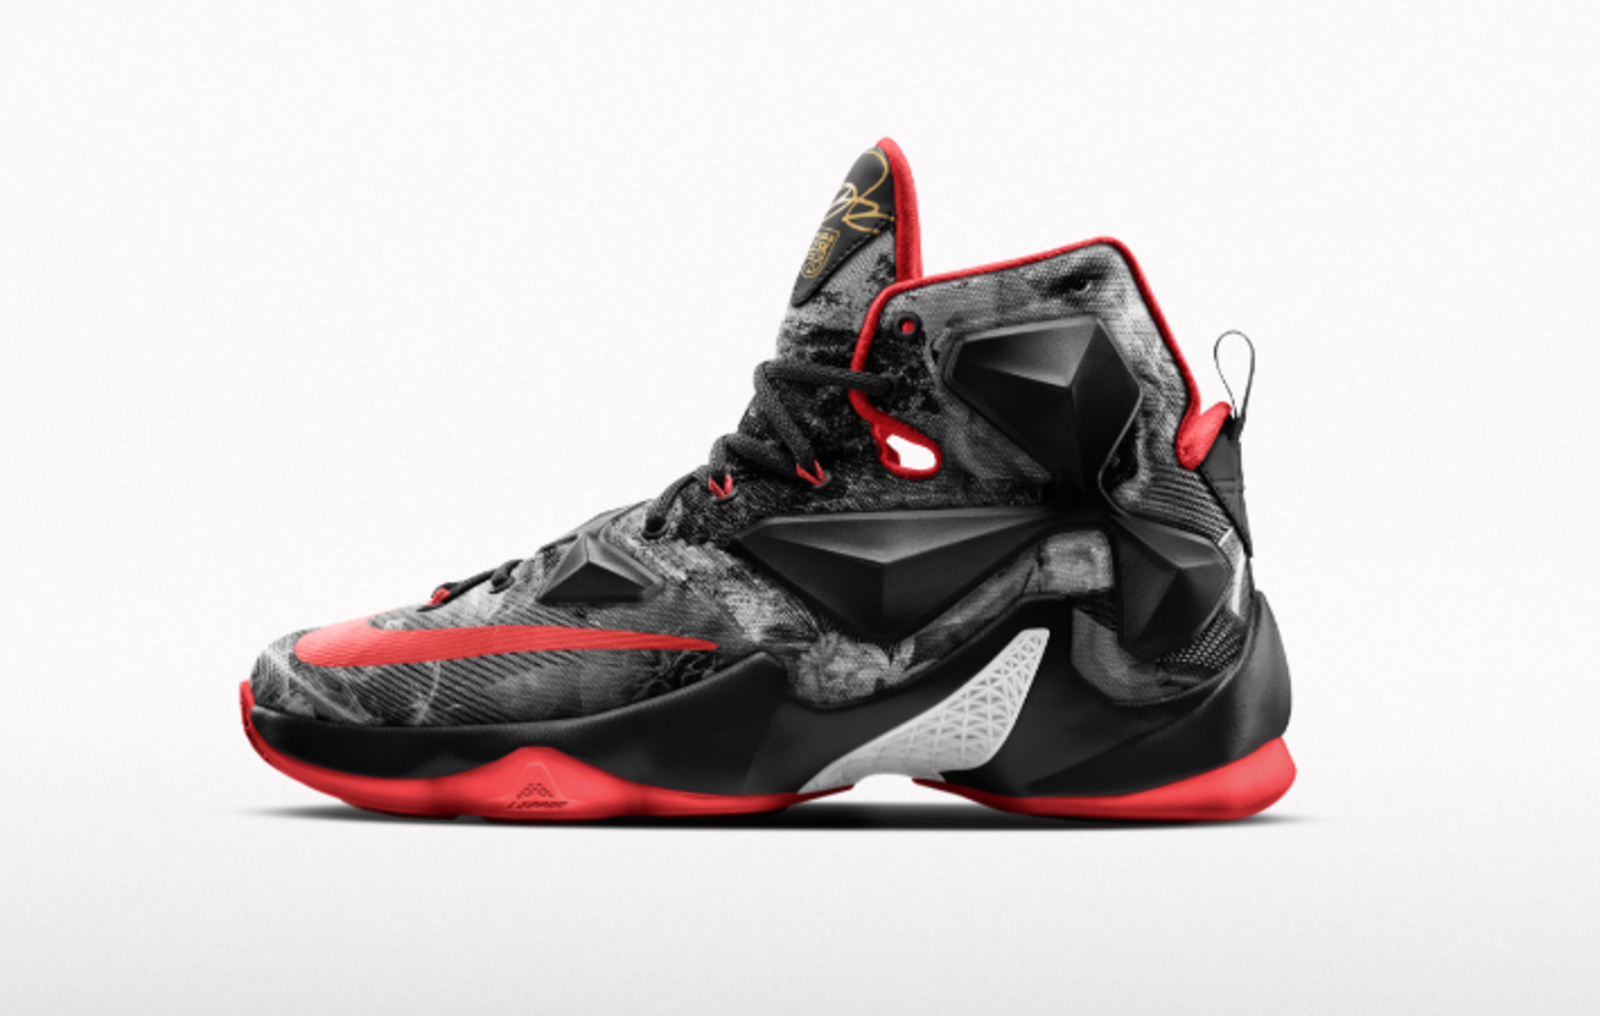 b69bcd645f22 Nike Honors LeBron James s 25K-Point Milestone - Nike News